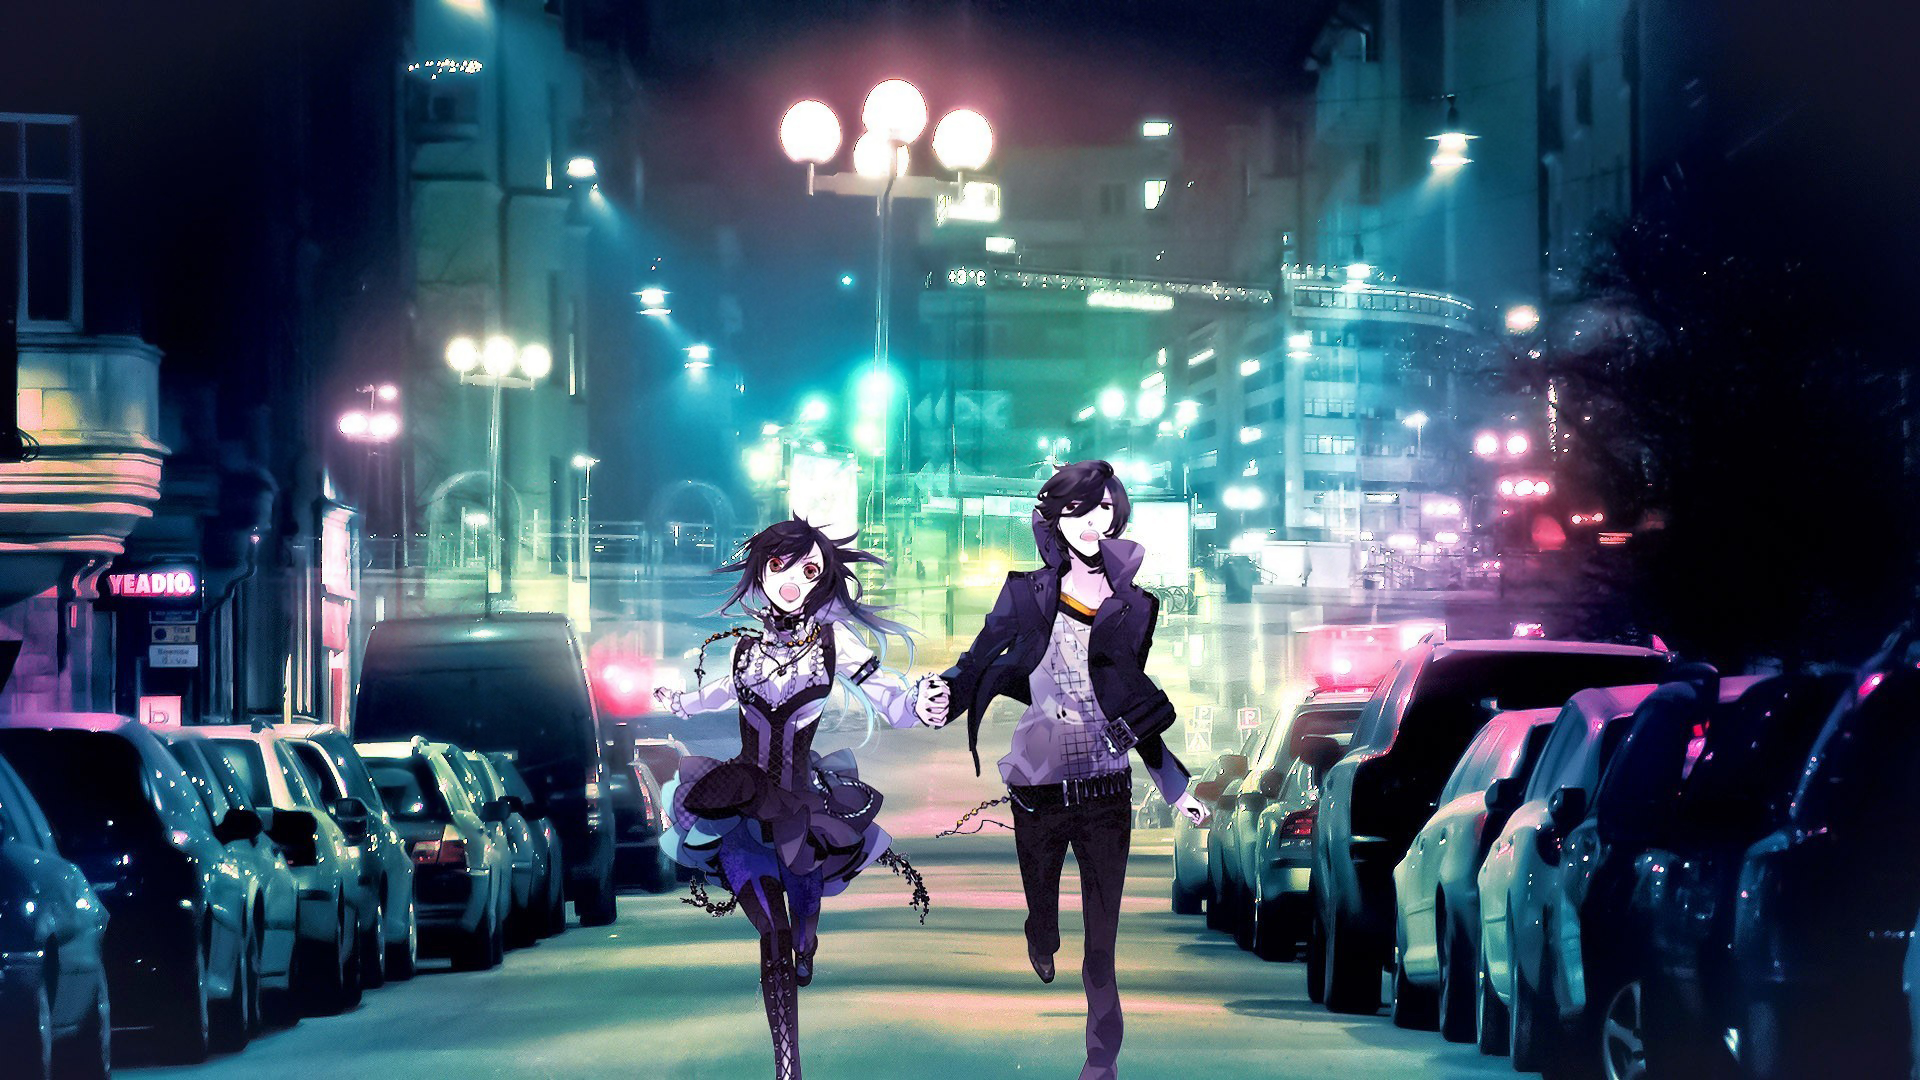 anime-boy-girl-running-city-1920%C3%971080-wallpaper-wpc9202474